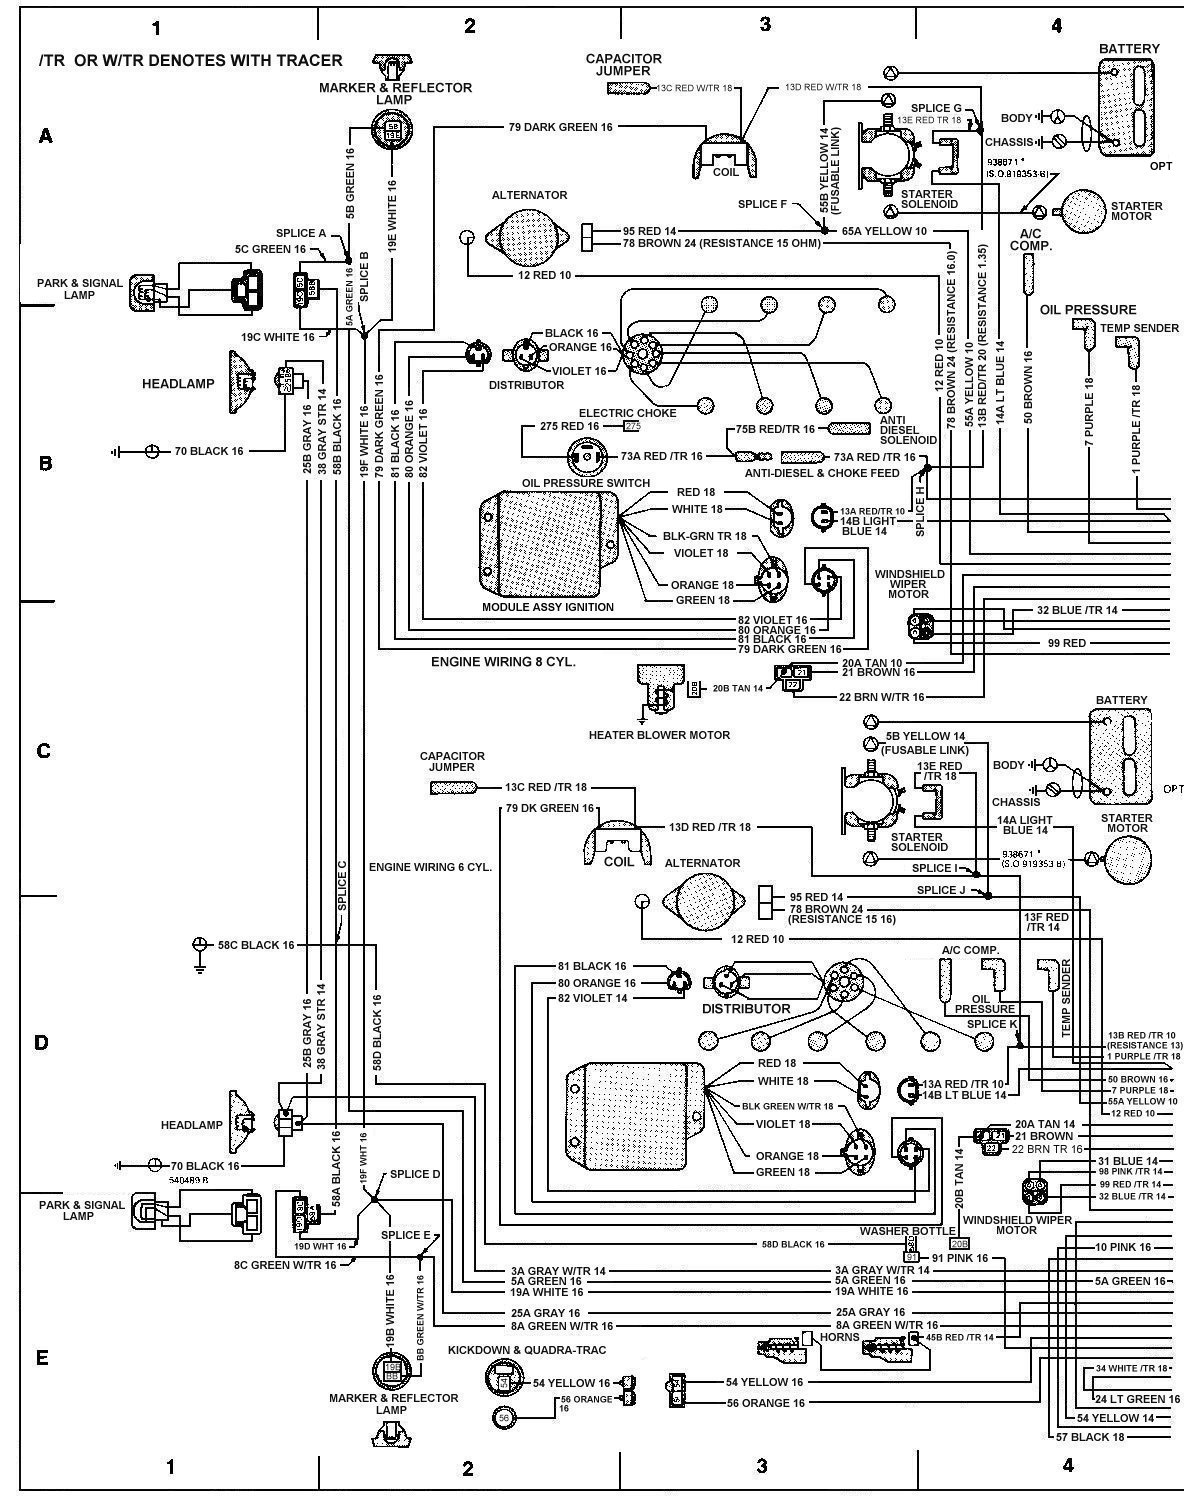 1980 jeep j 20 wiring diagram 1982 jeep j 20 wiring diagram